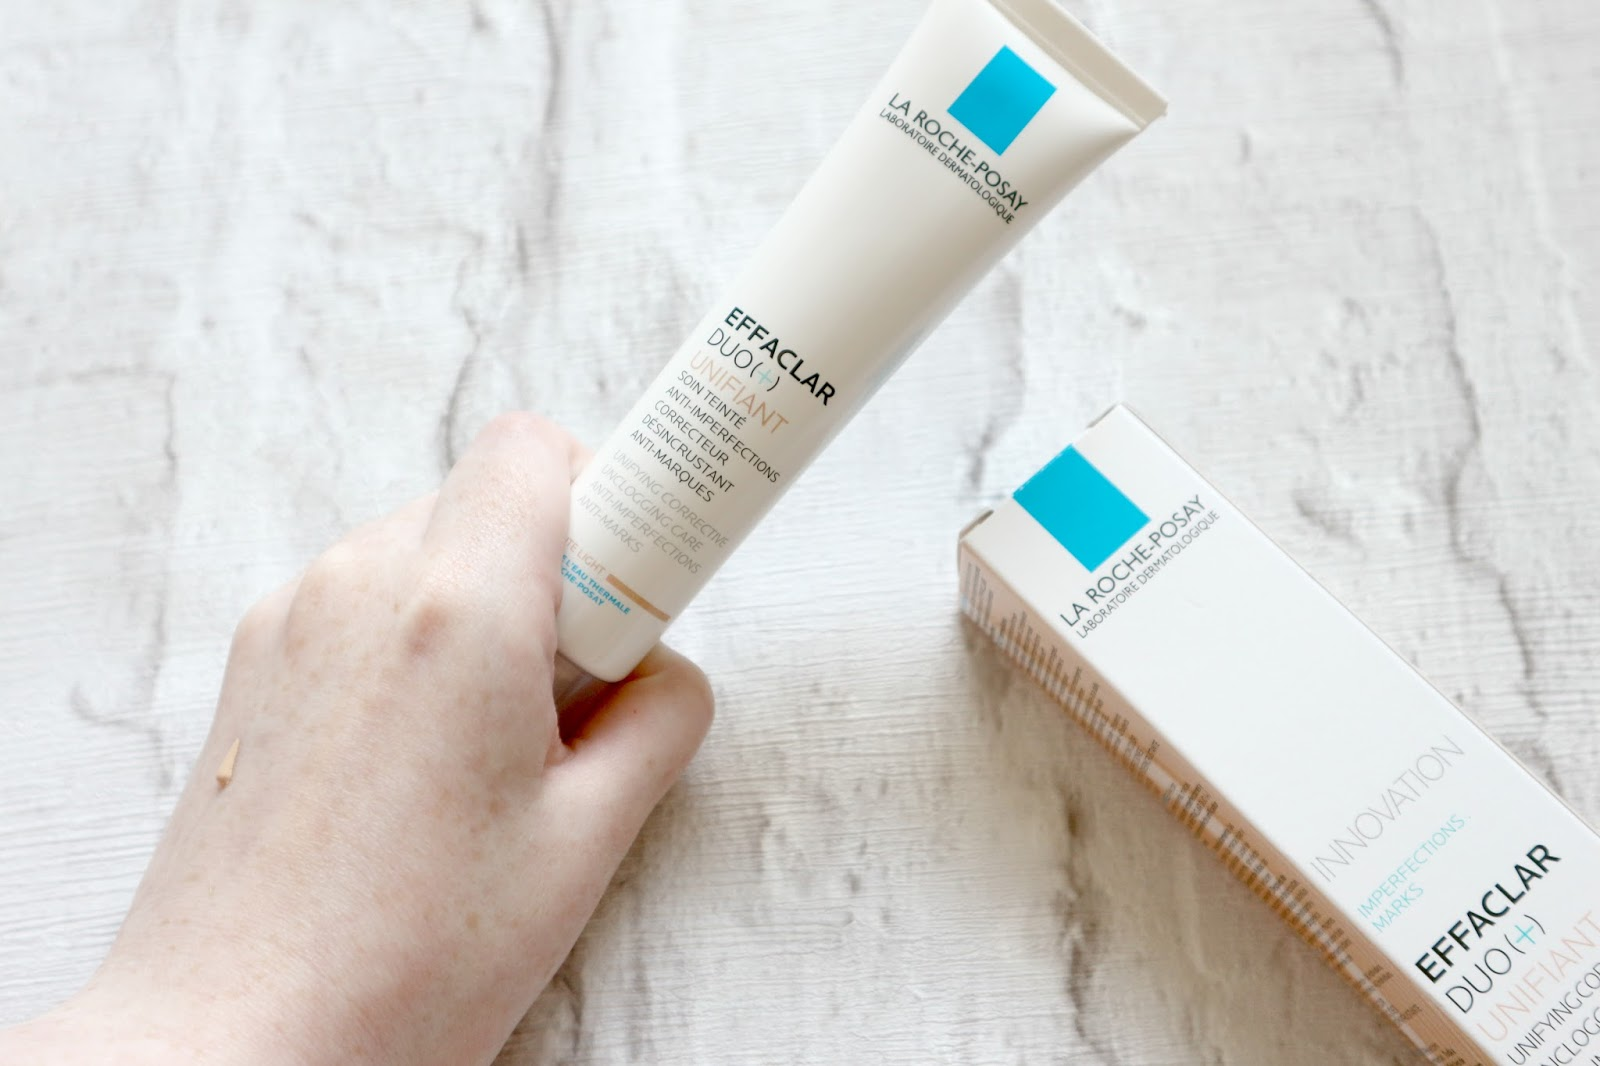 La Roche-Posay Effaclar Duo + Unifiant Swatches Beauty Blog